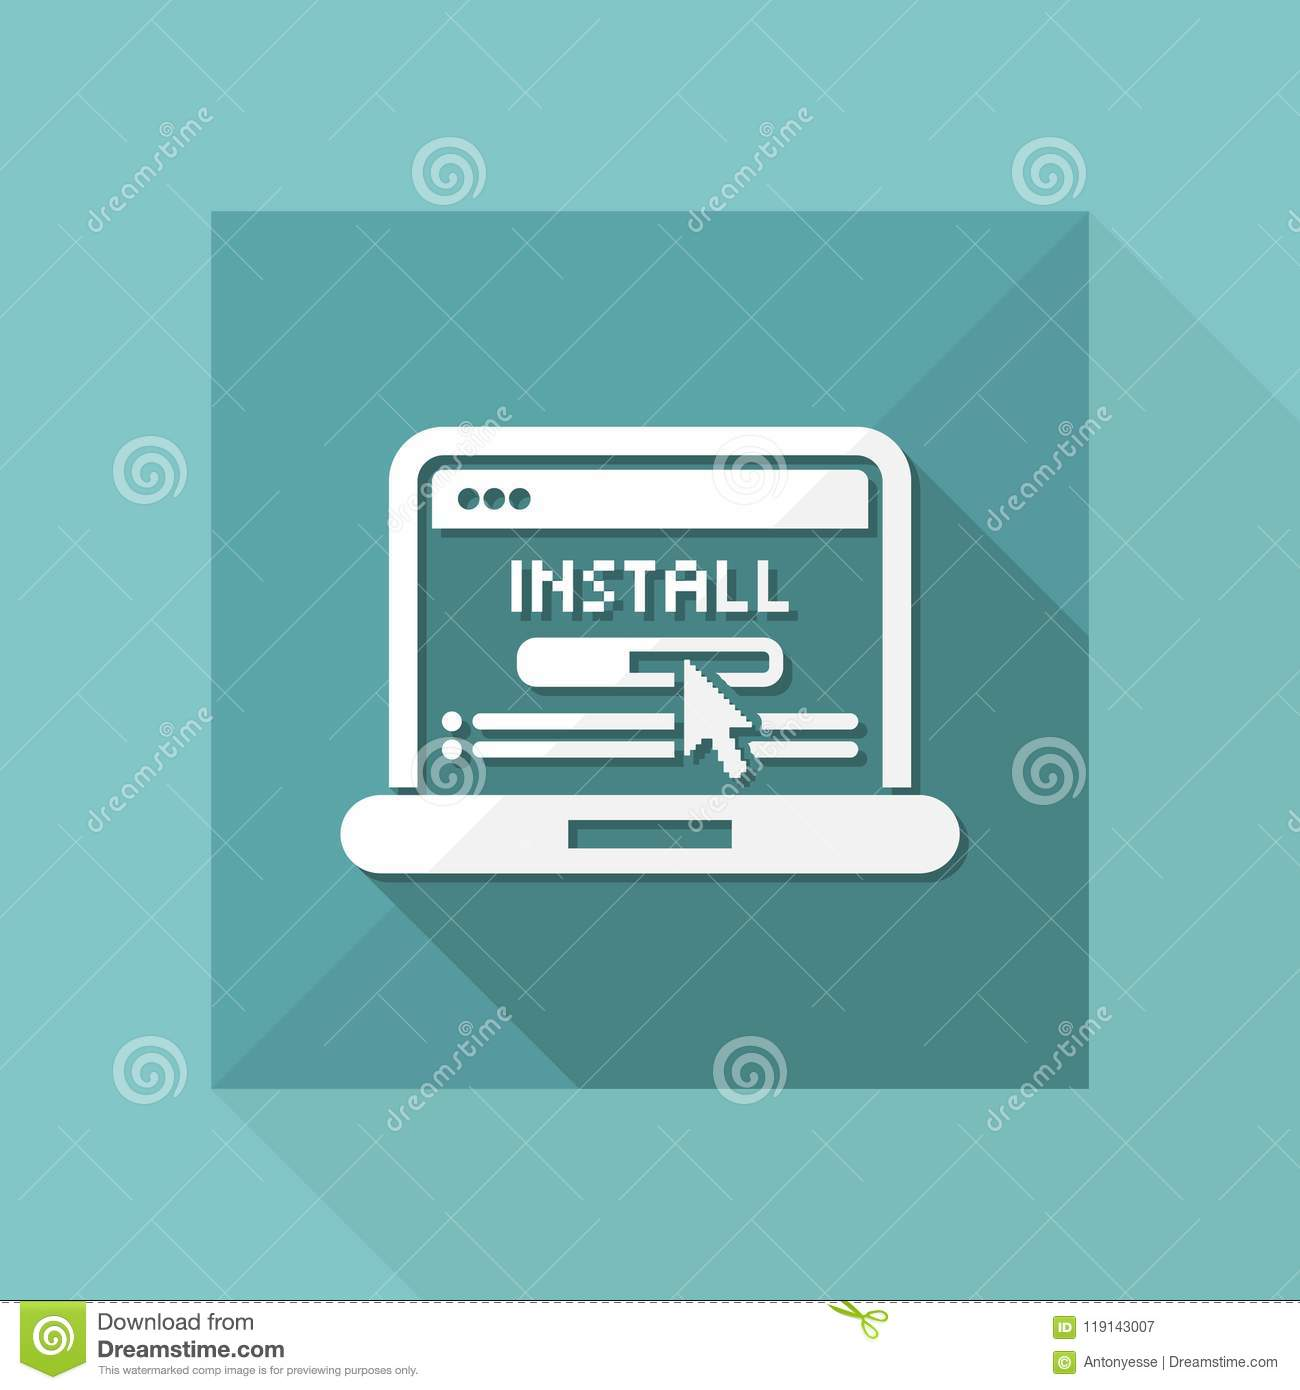 Pc install icon stock vector  Illustration of element